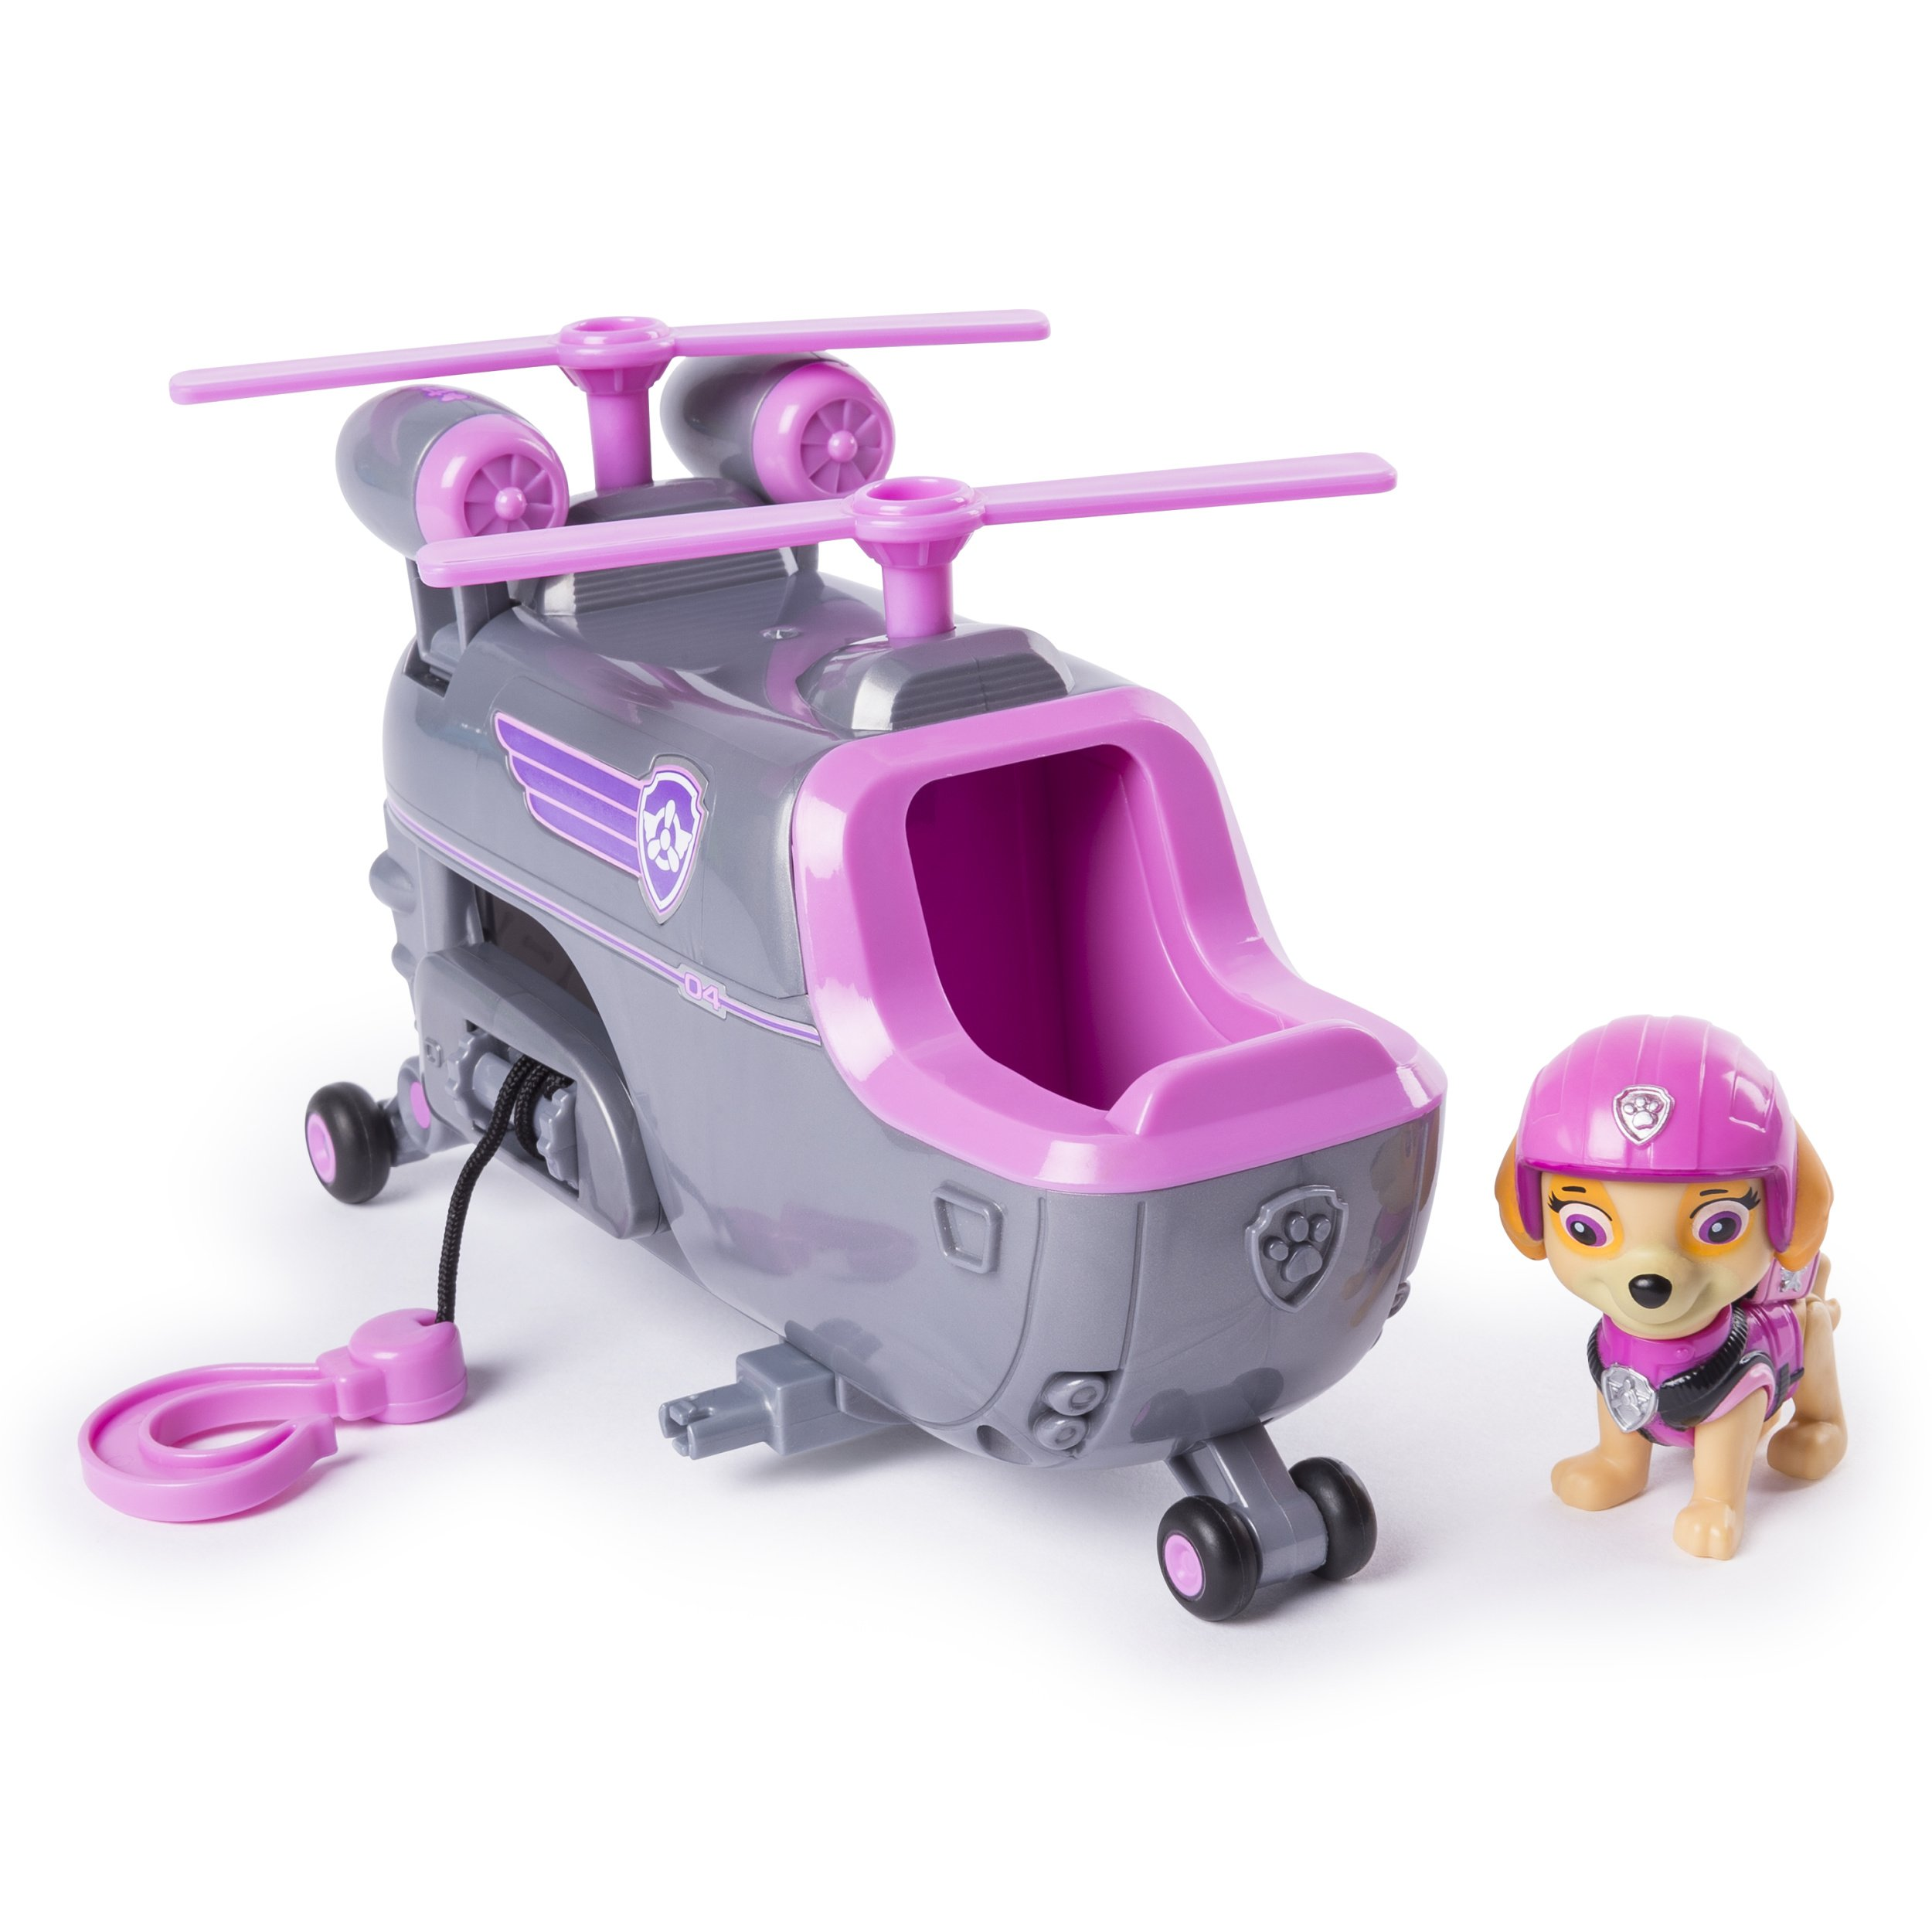 Paw Patrol Skye's Ultimate Rescue Helicopter Moving Propellers Hook by Paw Patrol (Image #1)